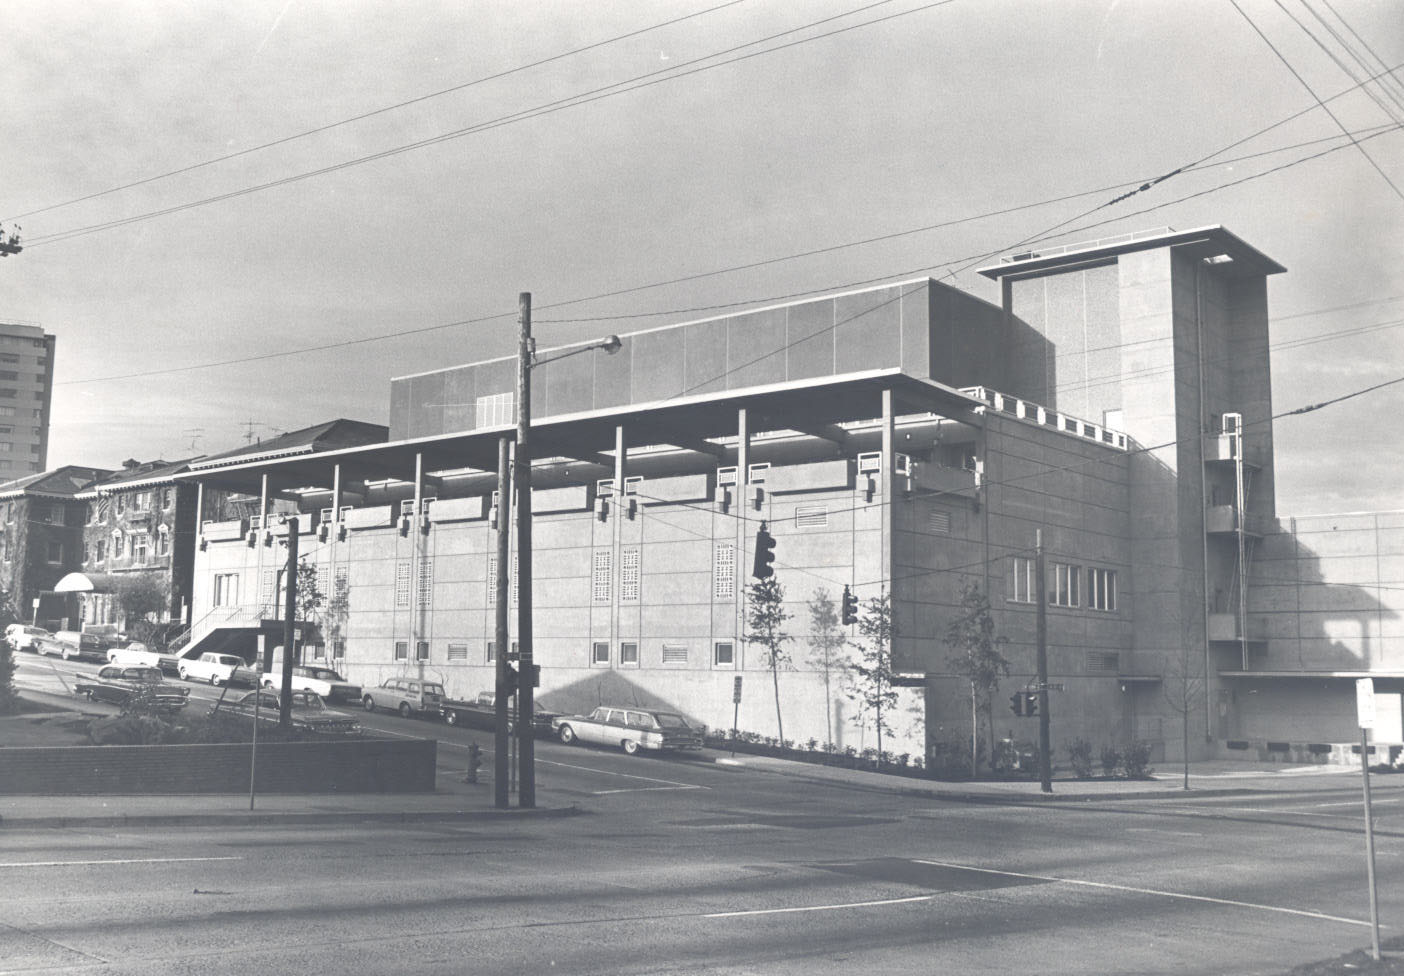 Multnomah Athletic Club, 1965